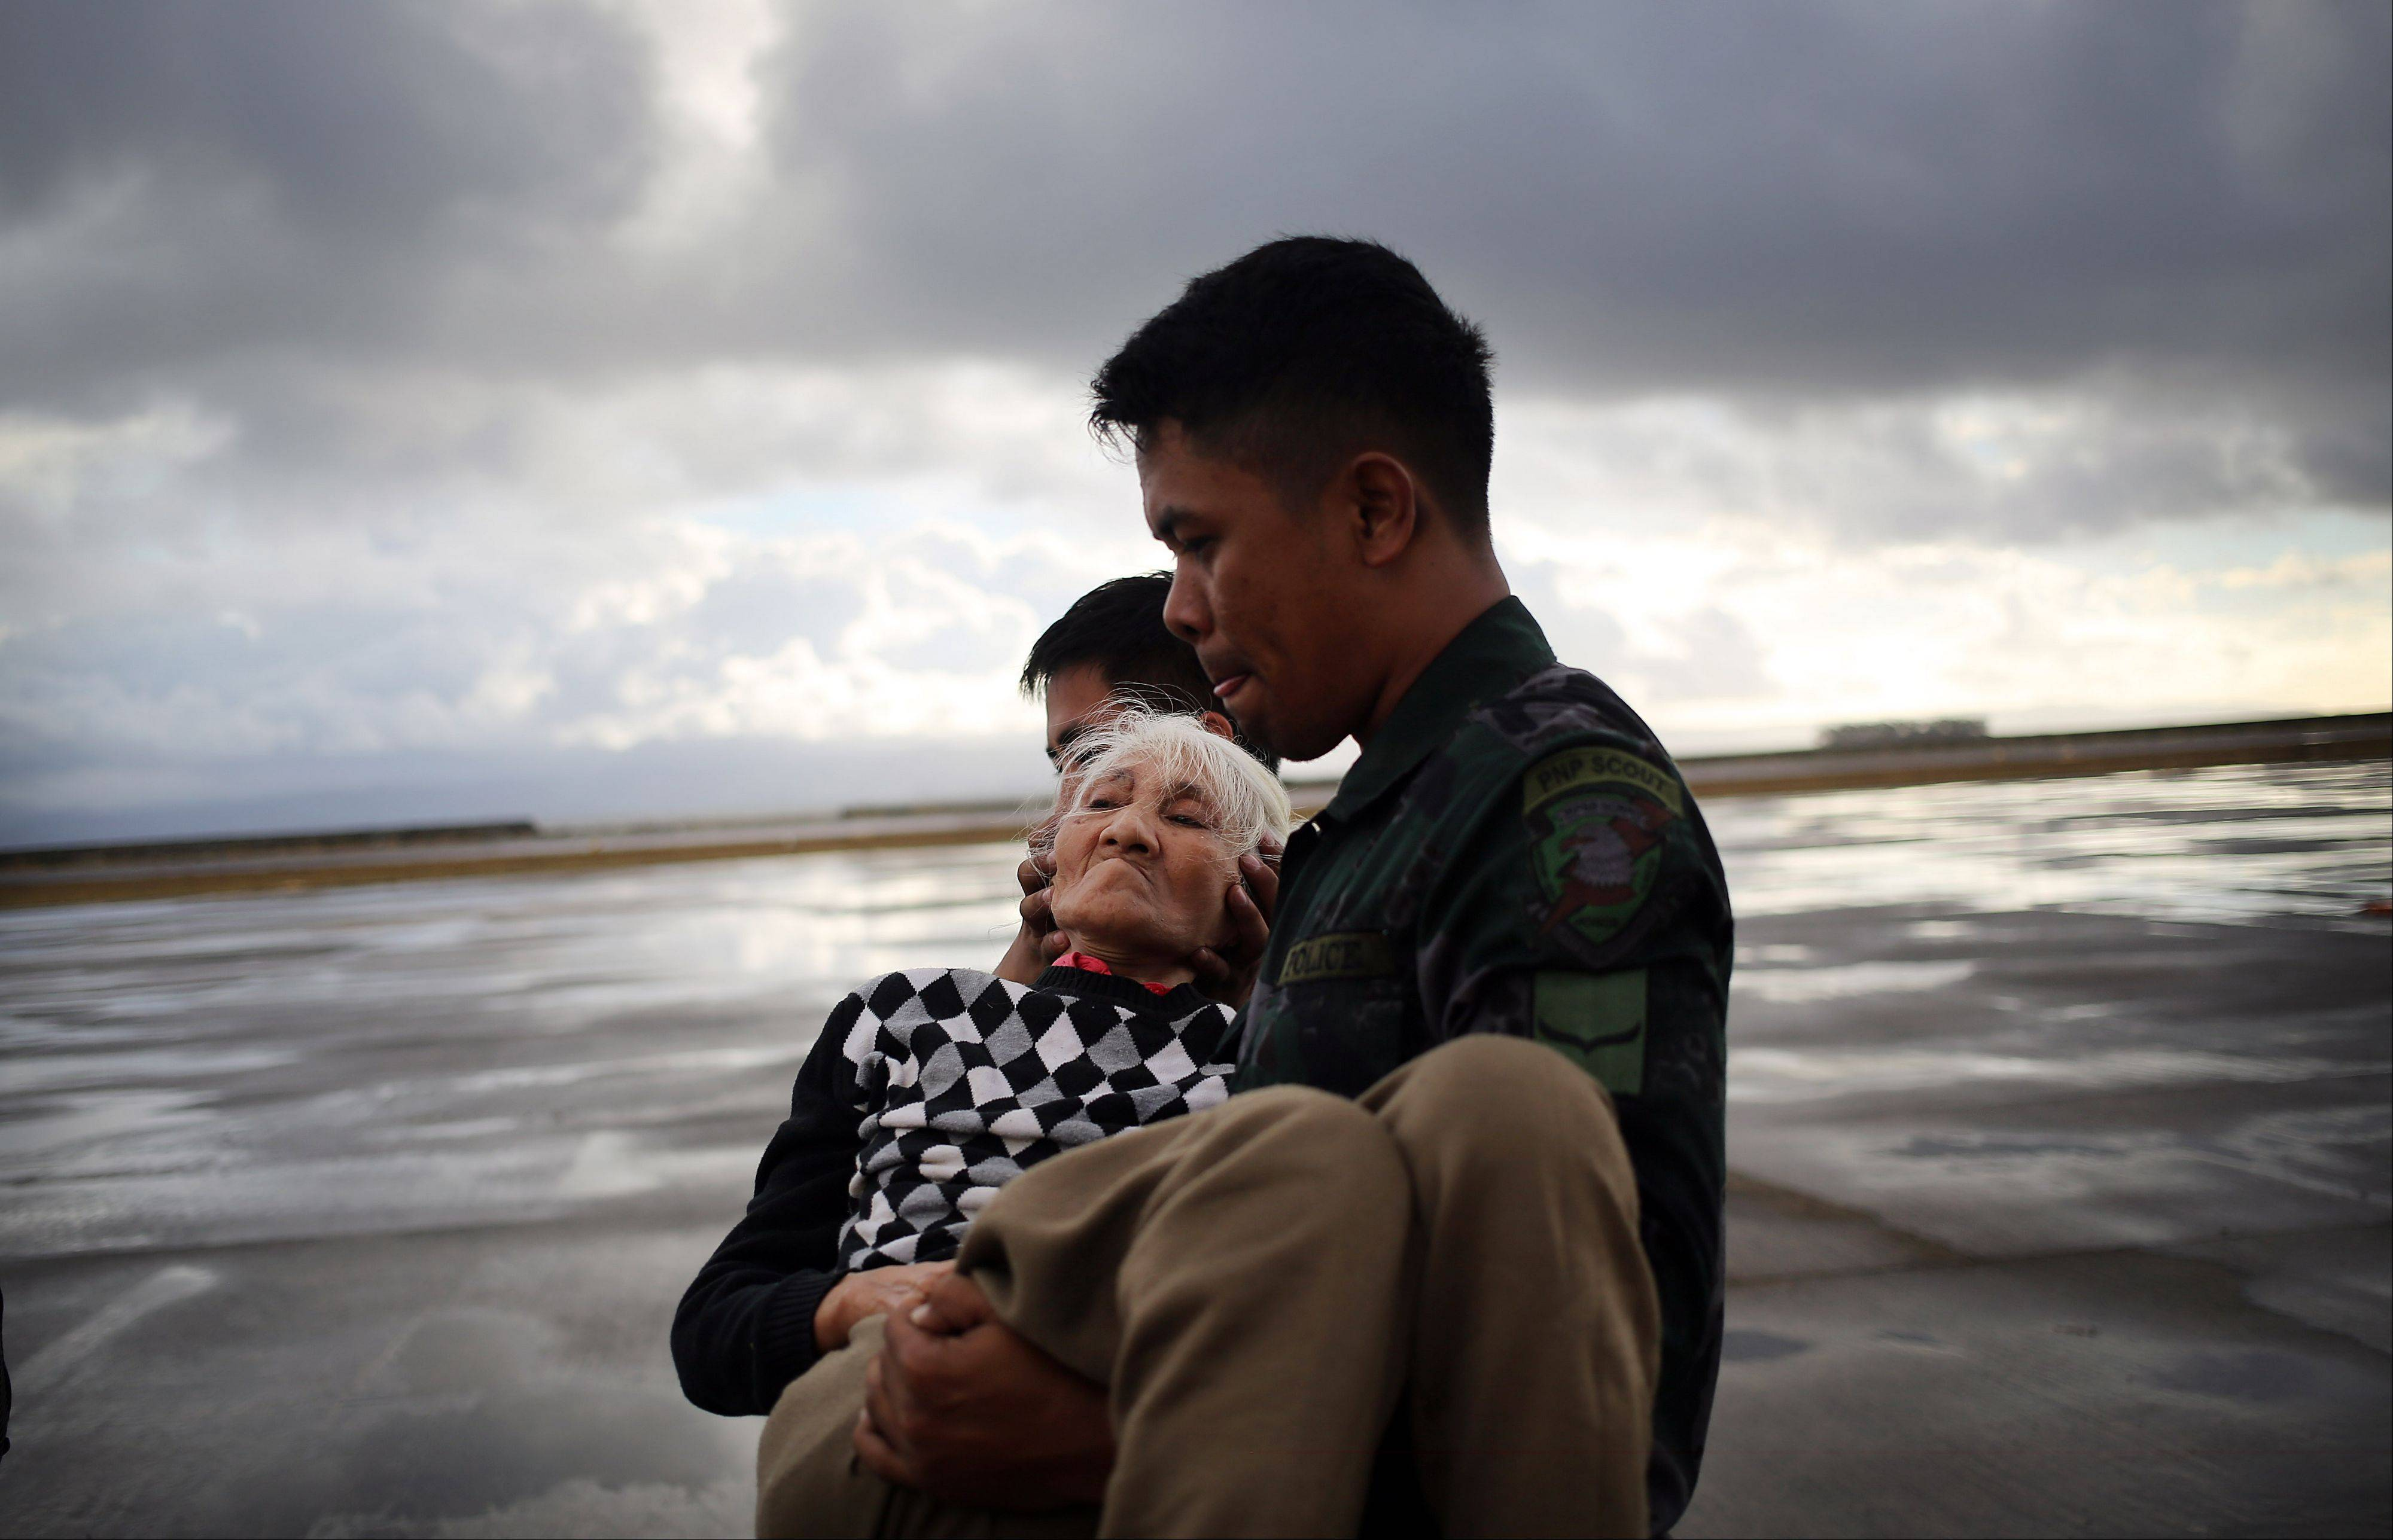 An elderly woman is evacuated from the airport in Tacloban, Wednesday, Nov. 13, 2013 in Tacloban city, Leyte province, central Philippines. Typhoon Haiyan, one of the strongest storms on record, slammed into six central Philippine islands on Friday leaving a wide swath of destruction.